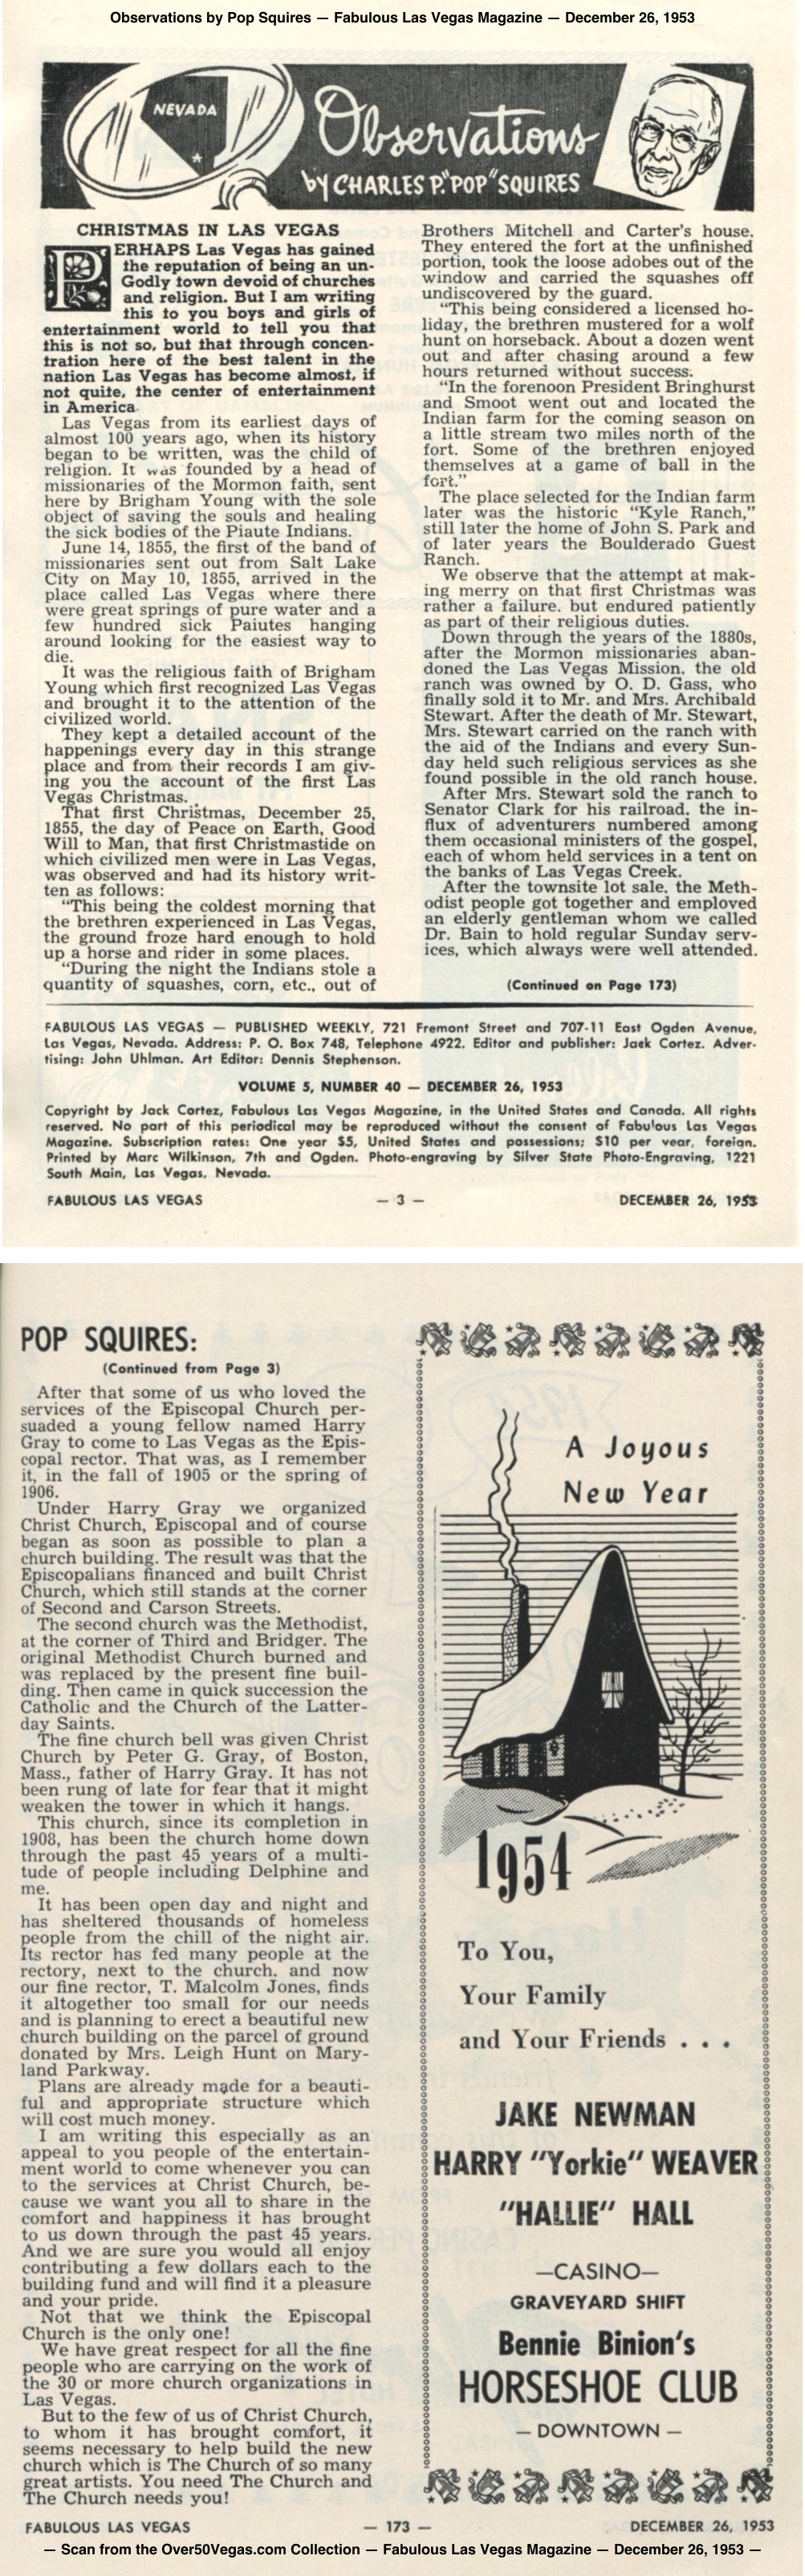 Observations by Pop Squires — Fabulous Las Vegas Magazine — December 26, 1953